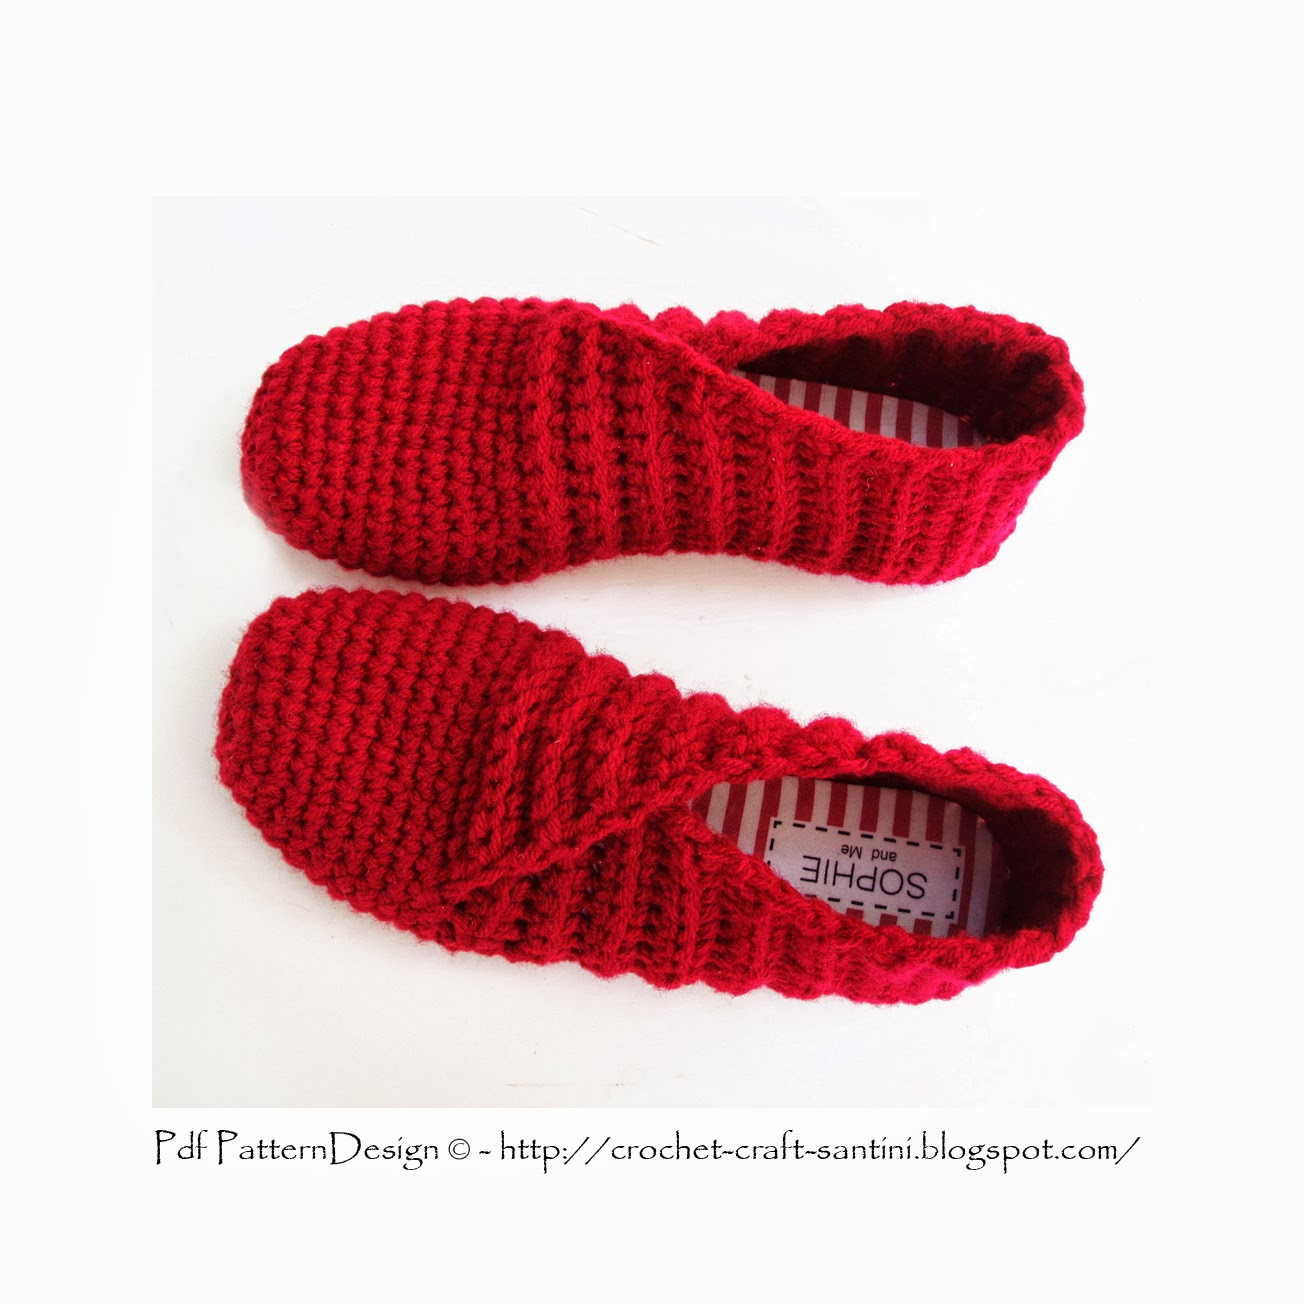 RIBBED and WRAPPED CROCHET SLIPPERS